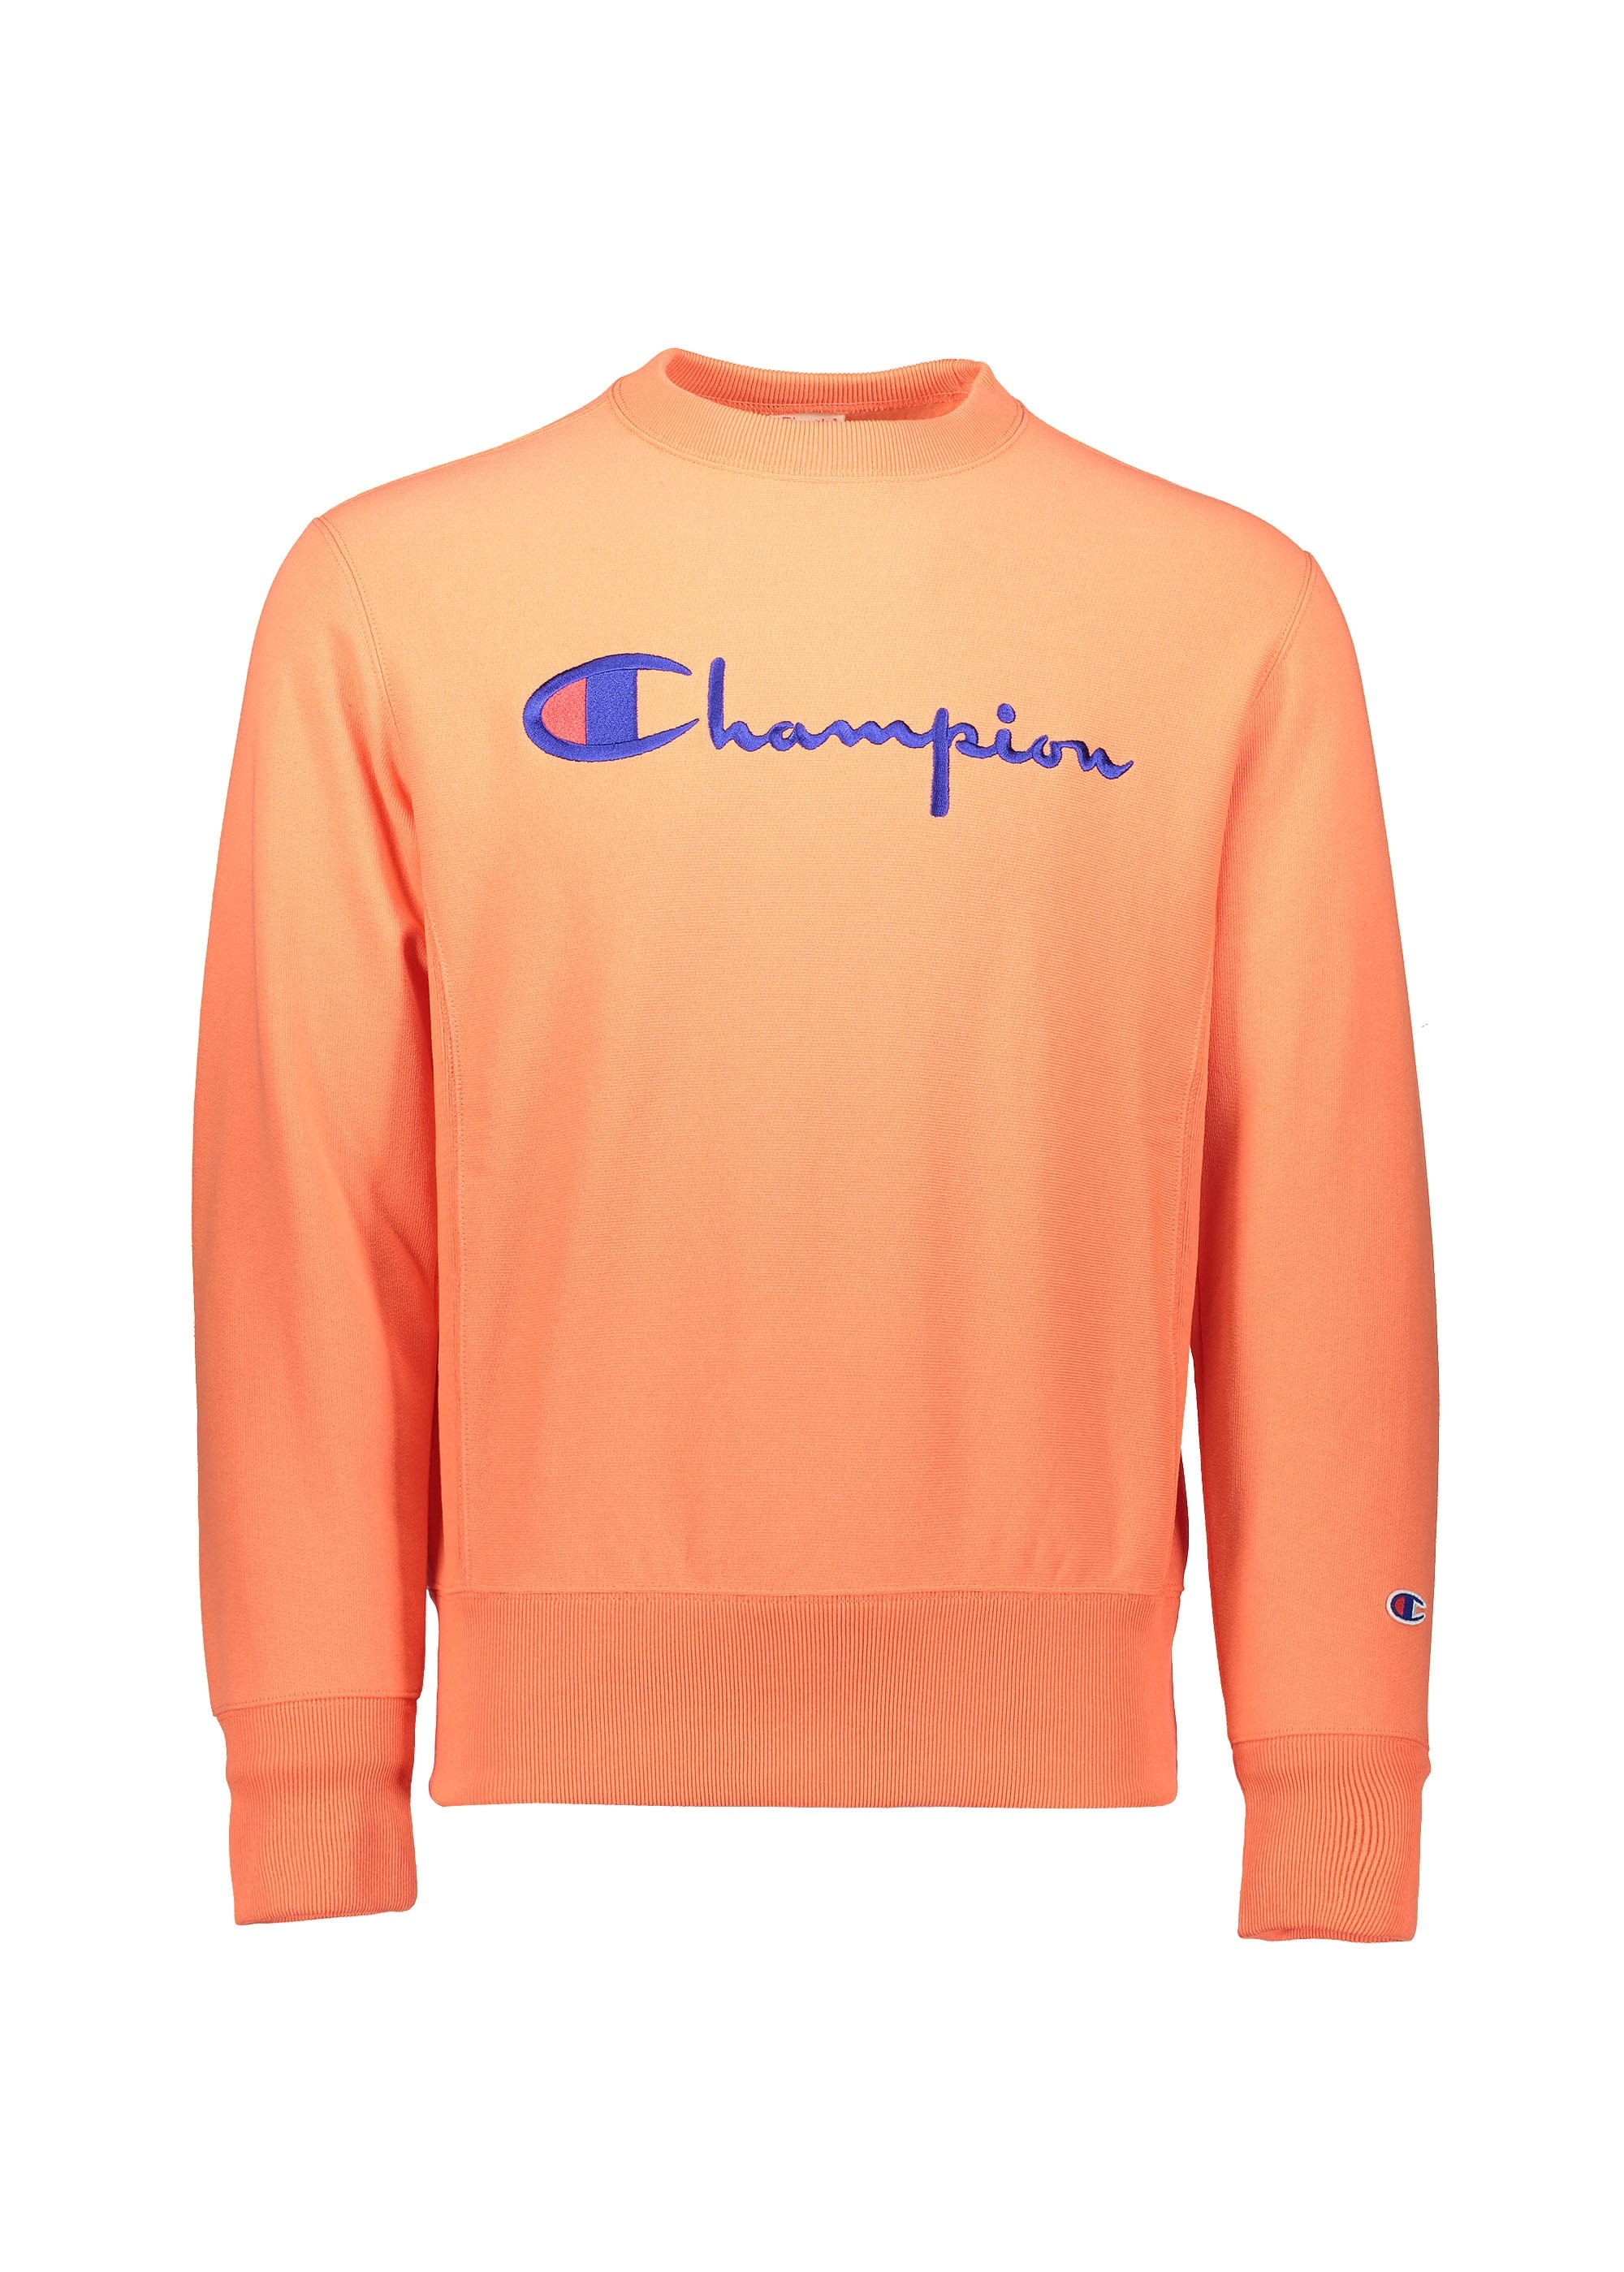 e05c3ef5 Champion Crewneck Sweatshirt - Orange - T-shirts from Triads UK